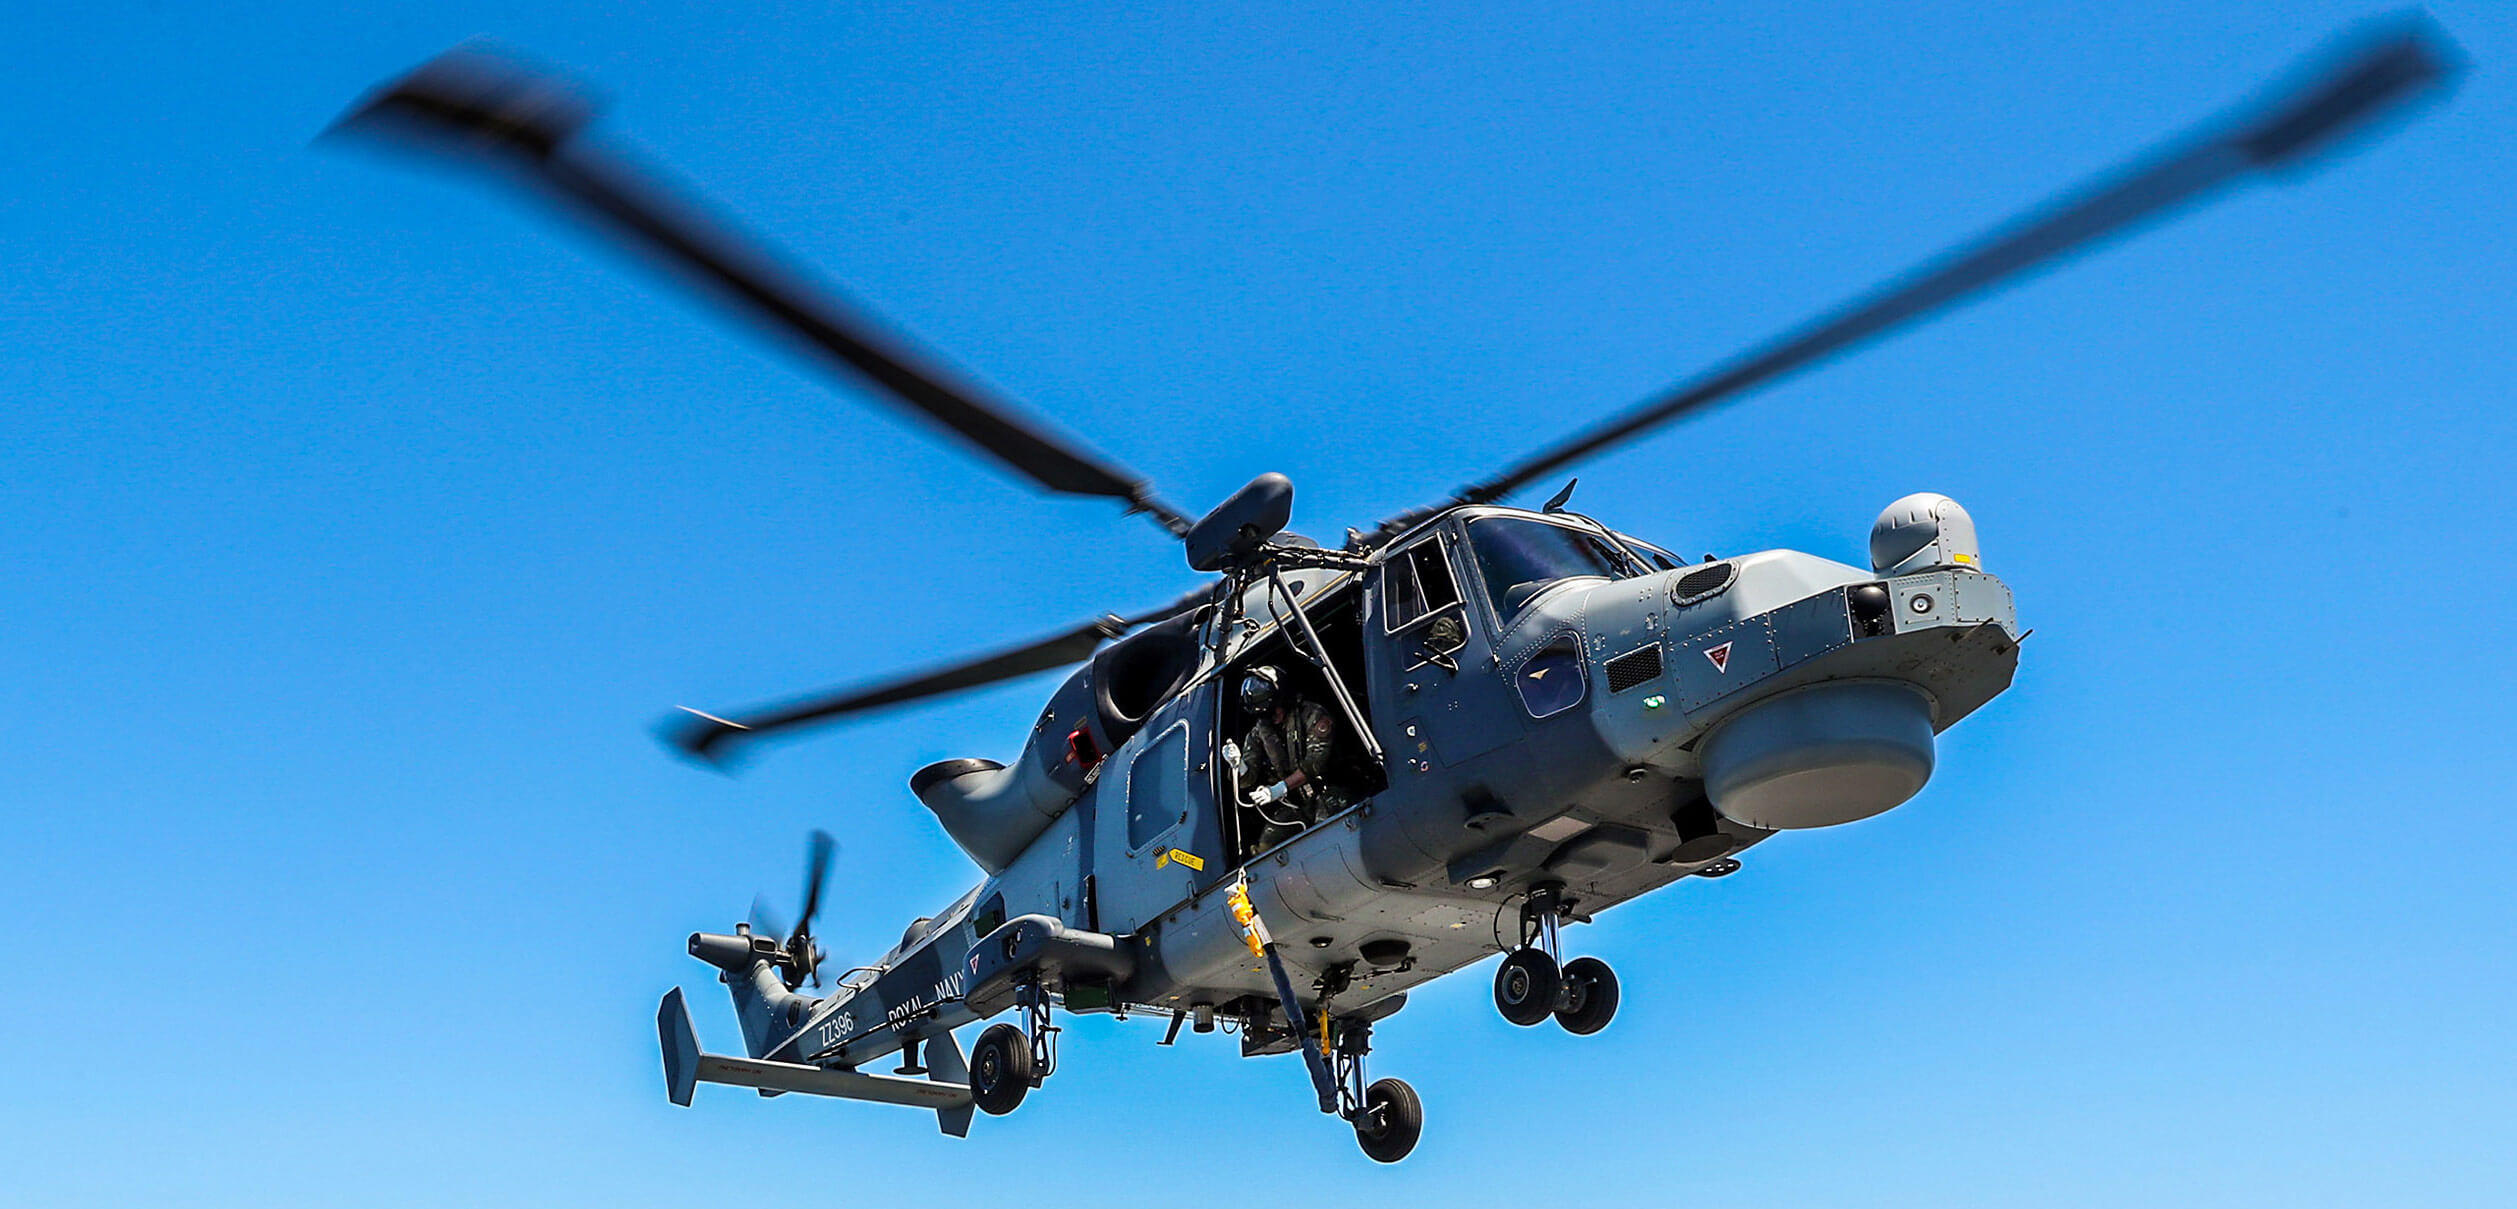 In focus: the Wildcat multi role helicopter in service with the Royal Navy